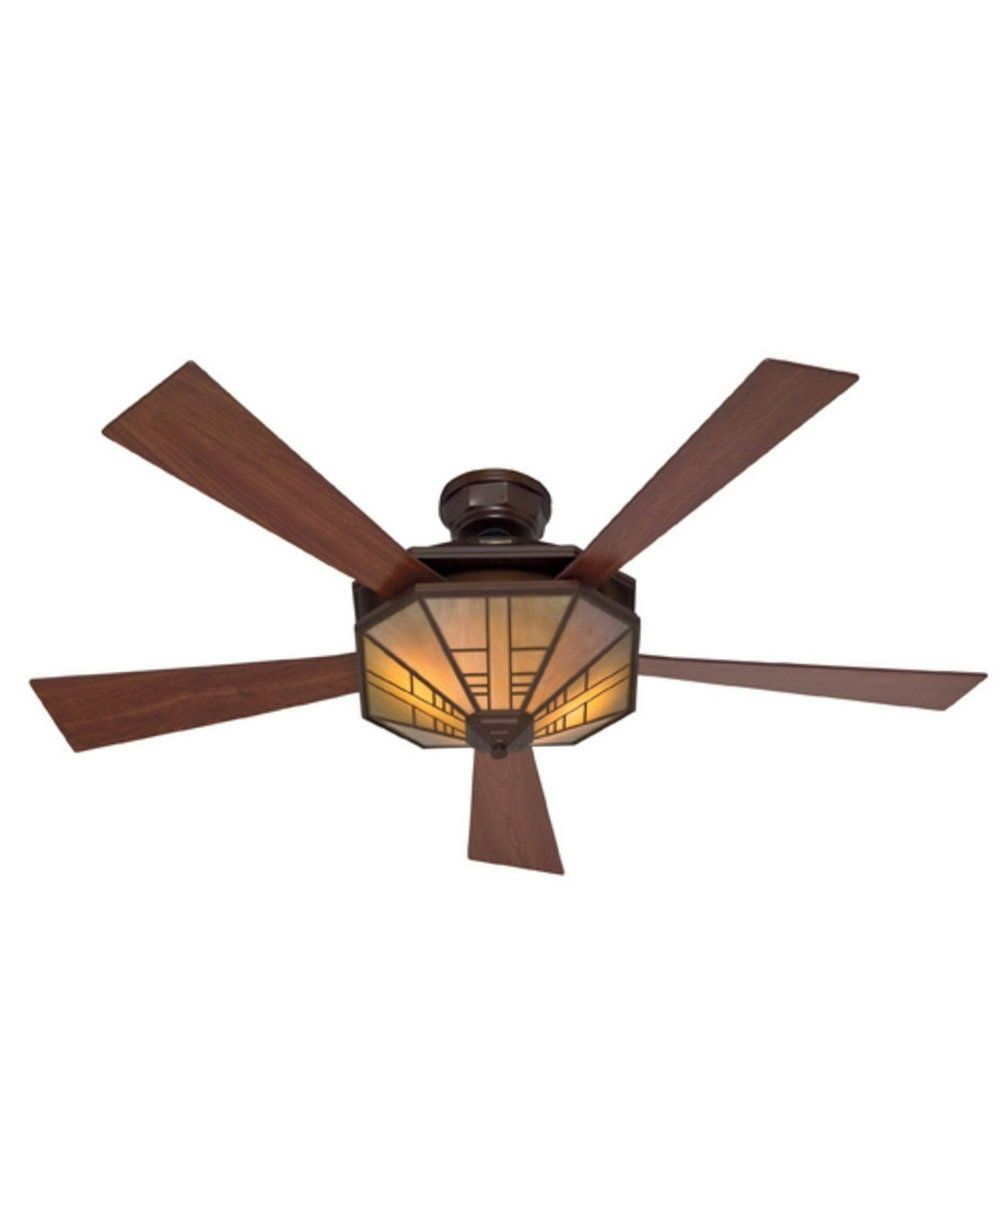 Hunter douglas ceiling fans troubleshooting http hunter douglas ceiling fans troubleshooting aloadofball Choice Image